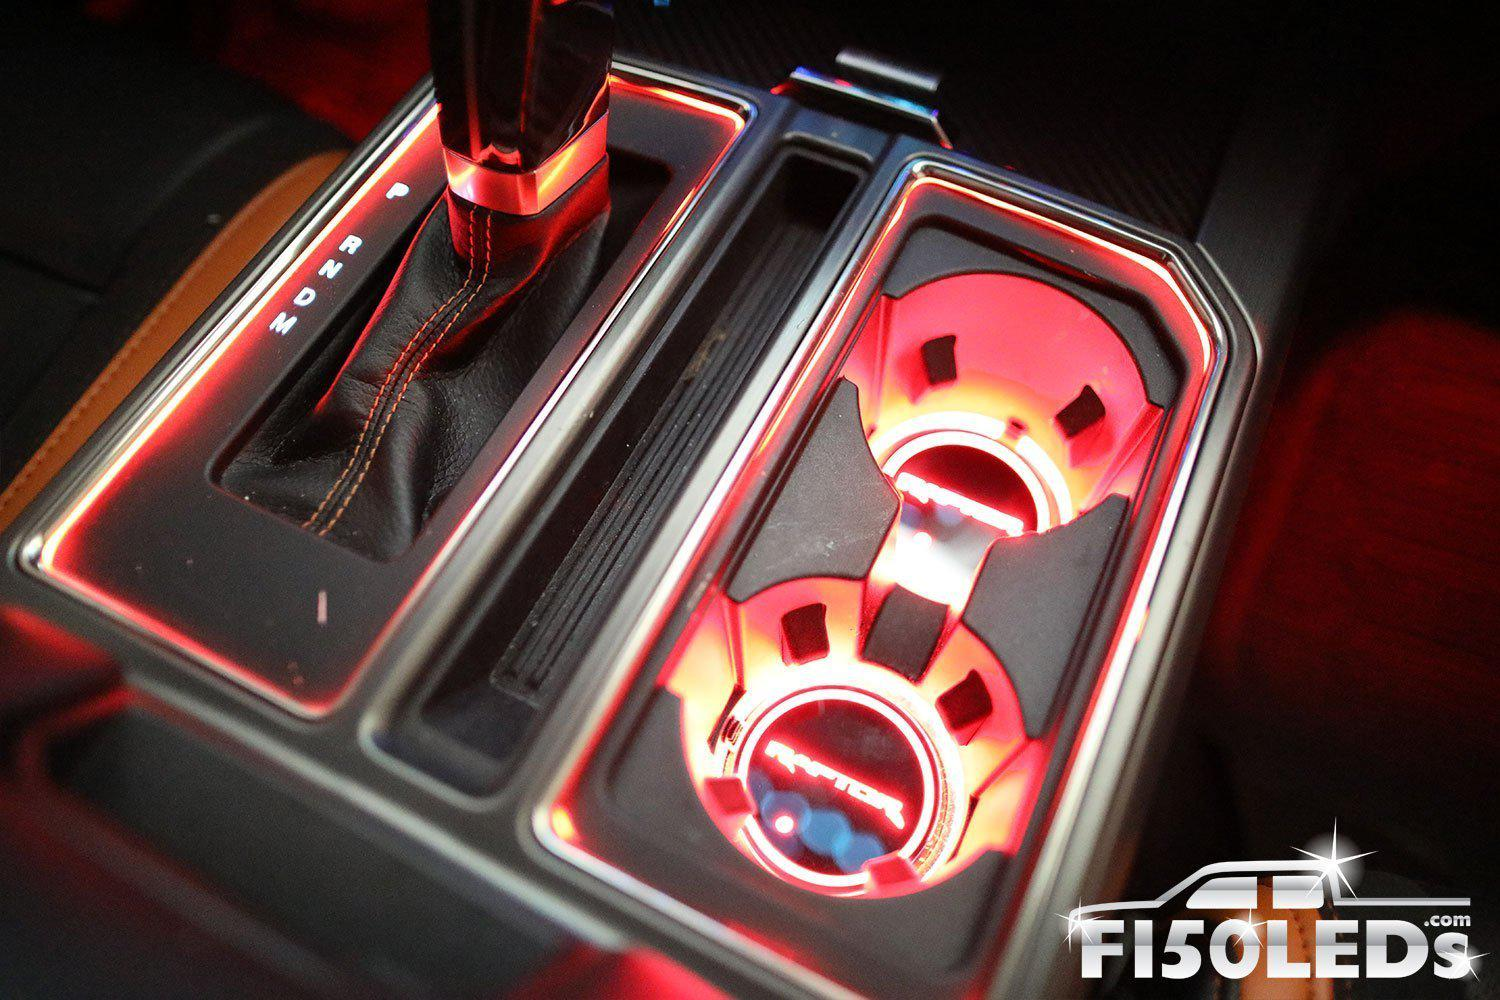 2010-14 F150 Raptor LED Cup Holder Coaster Kit-2010-14 F150 RAPTOR LEDS-F150LEDs.com